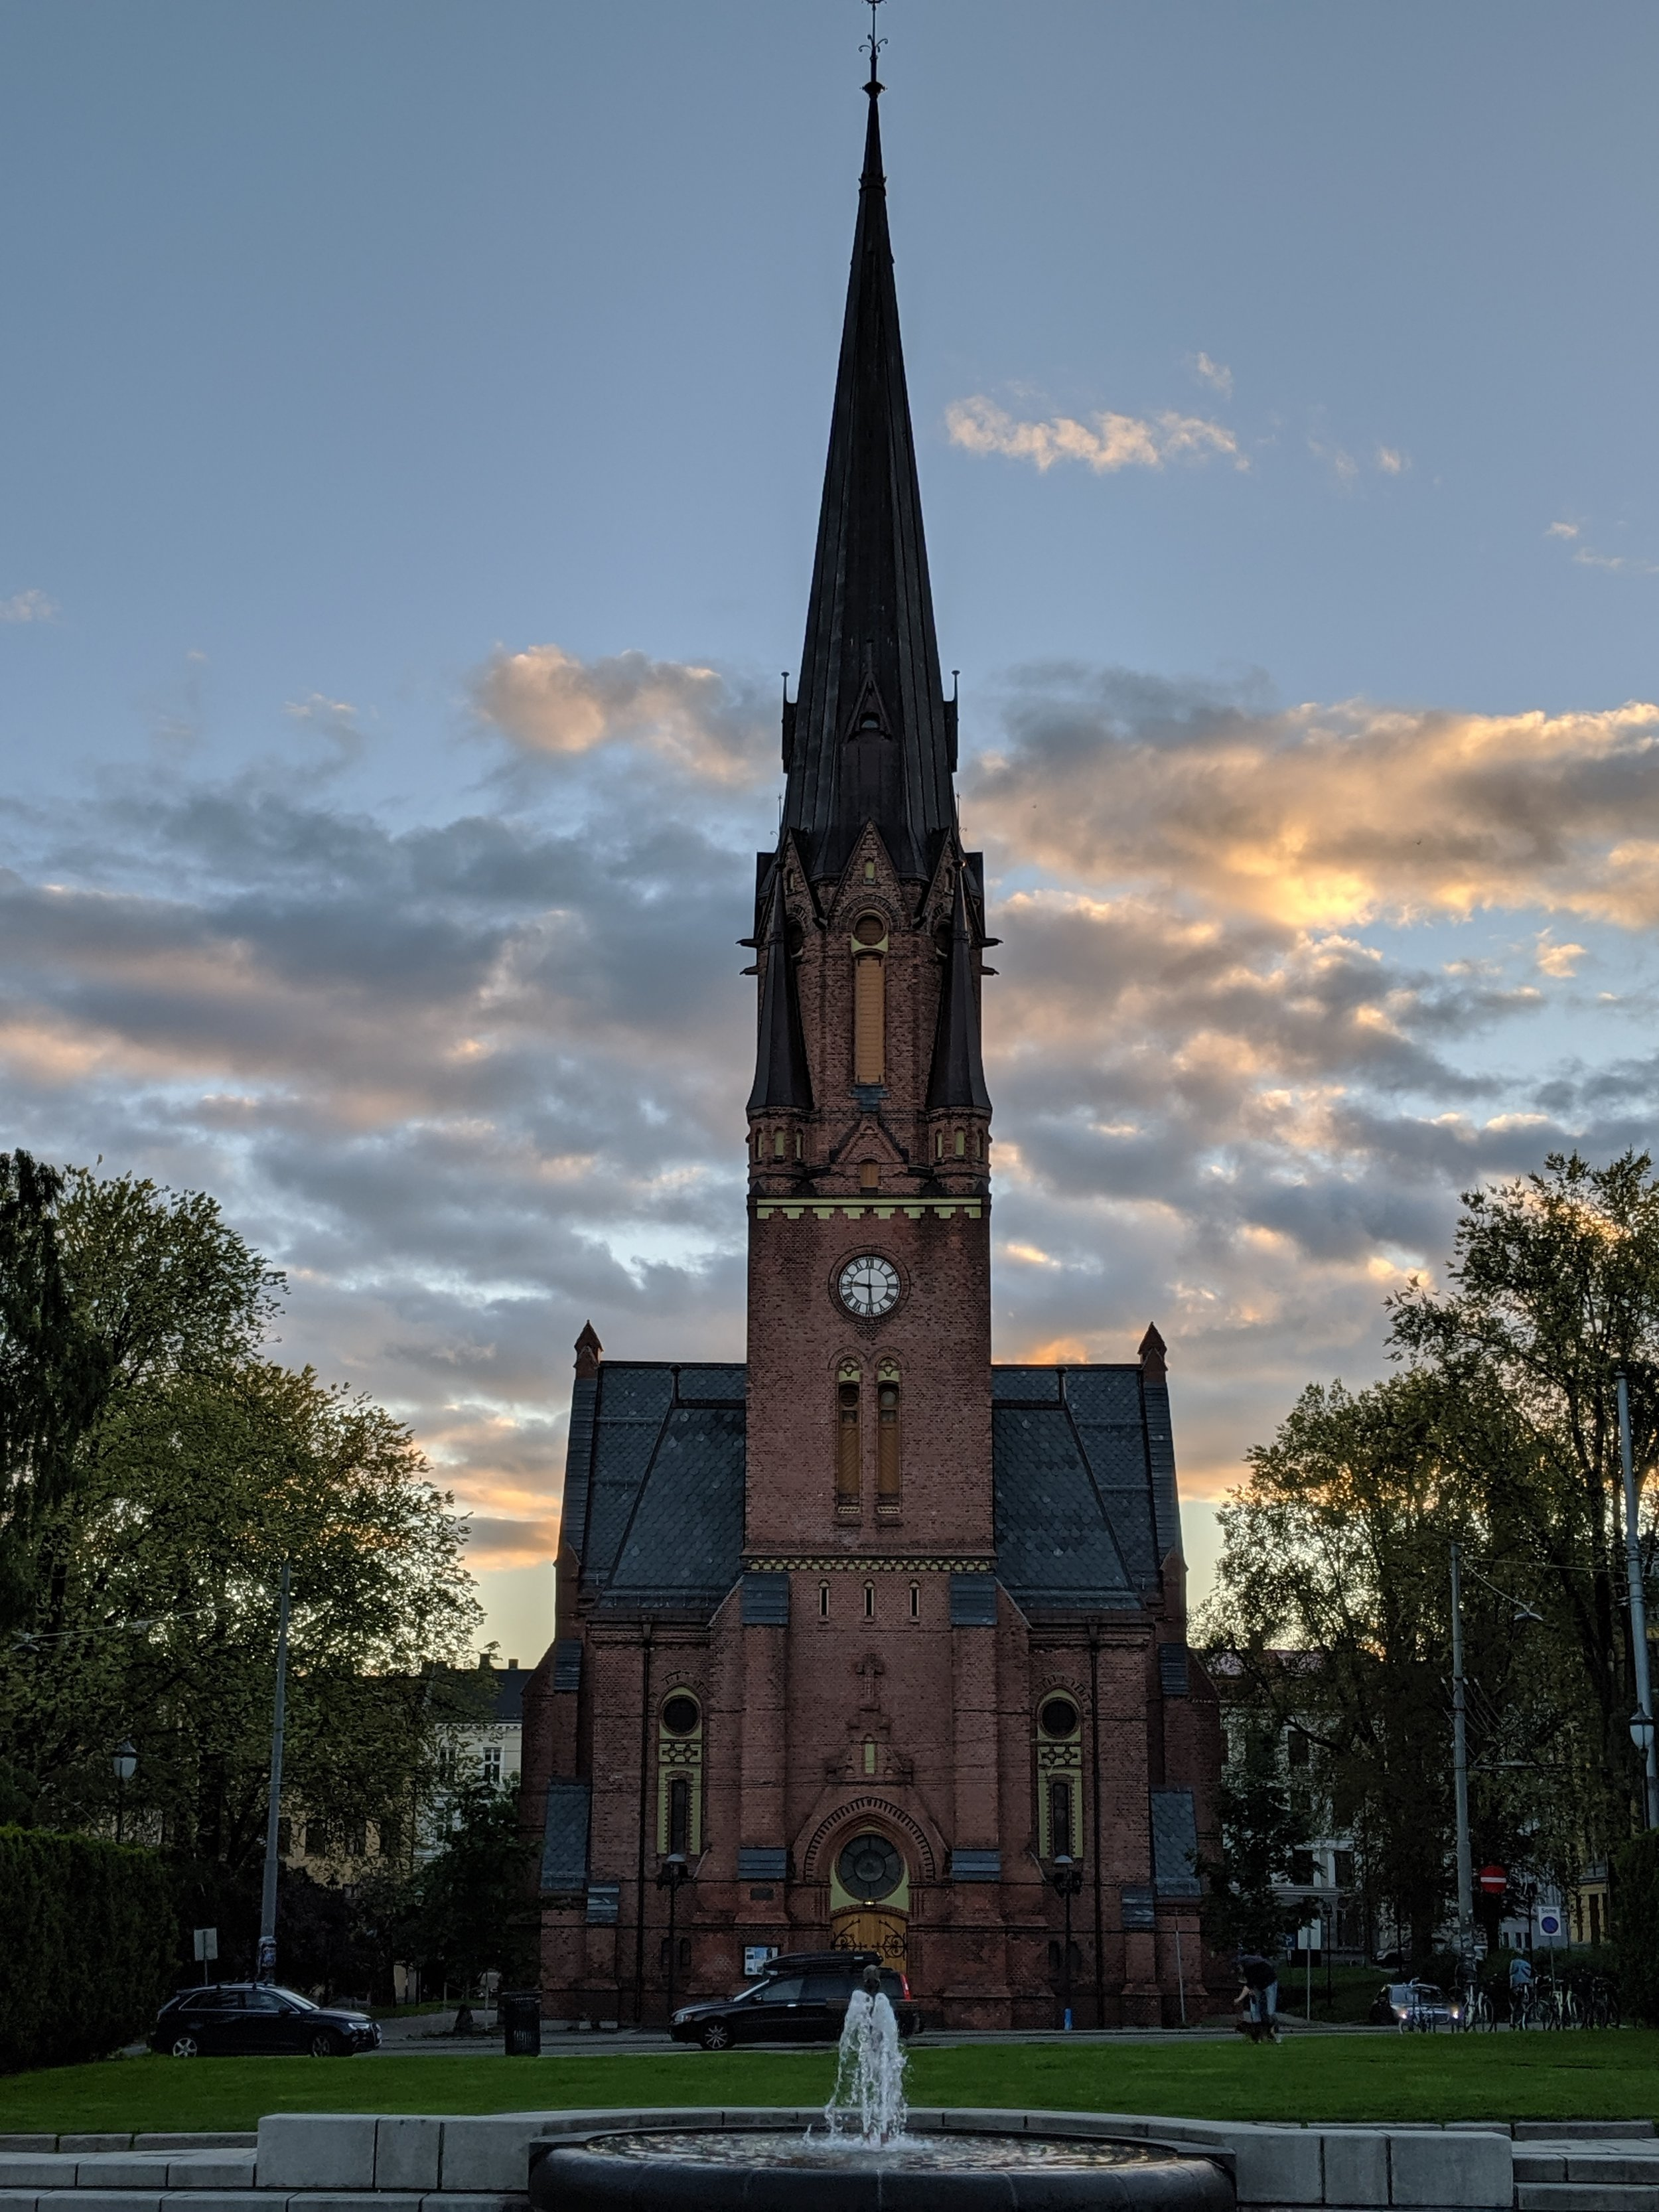 An old church near our AirBnB that Alena expertly photographed.